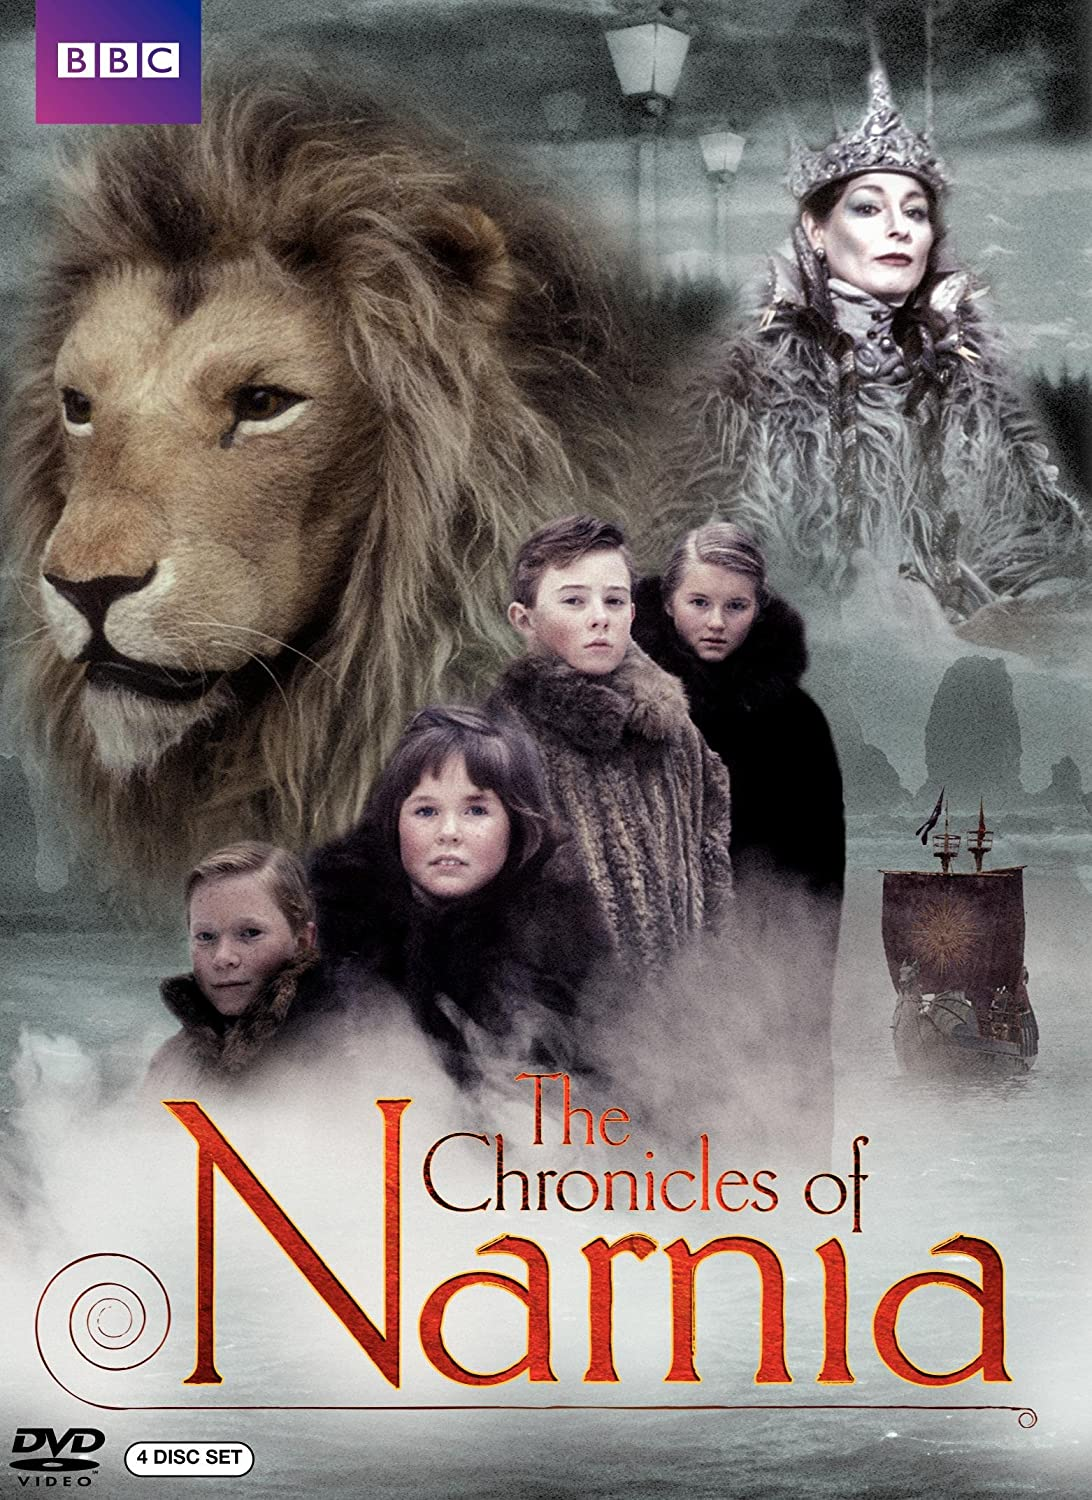 The silver chair bbc - Amazon Com The Chronicles Of Narnia The Lion The Witch And The Wardrobe Prince Caspian The Voyage Of The Dawn Treader The Silver Chair Bbc